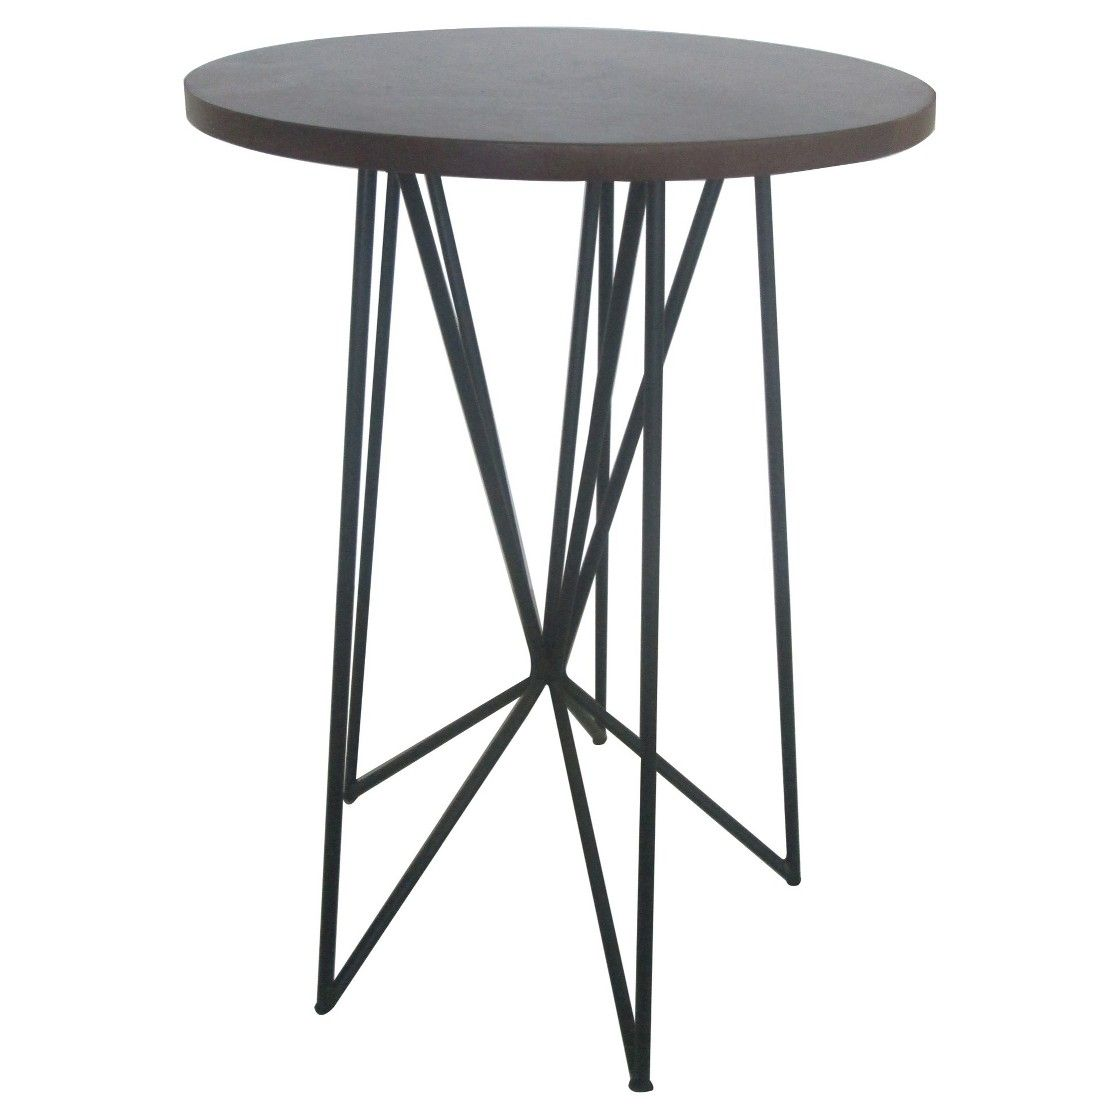 room essentials mixed material accent table black furniture mid century dining chairs windham coffee tiffany shades tall small round modern floor lamp with attached door console